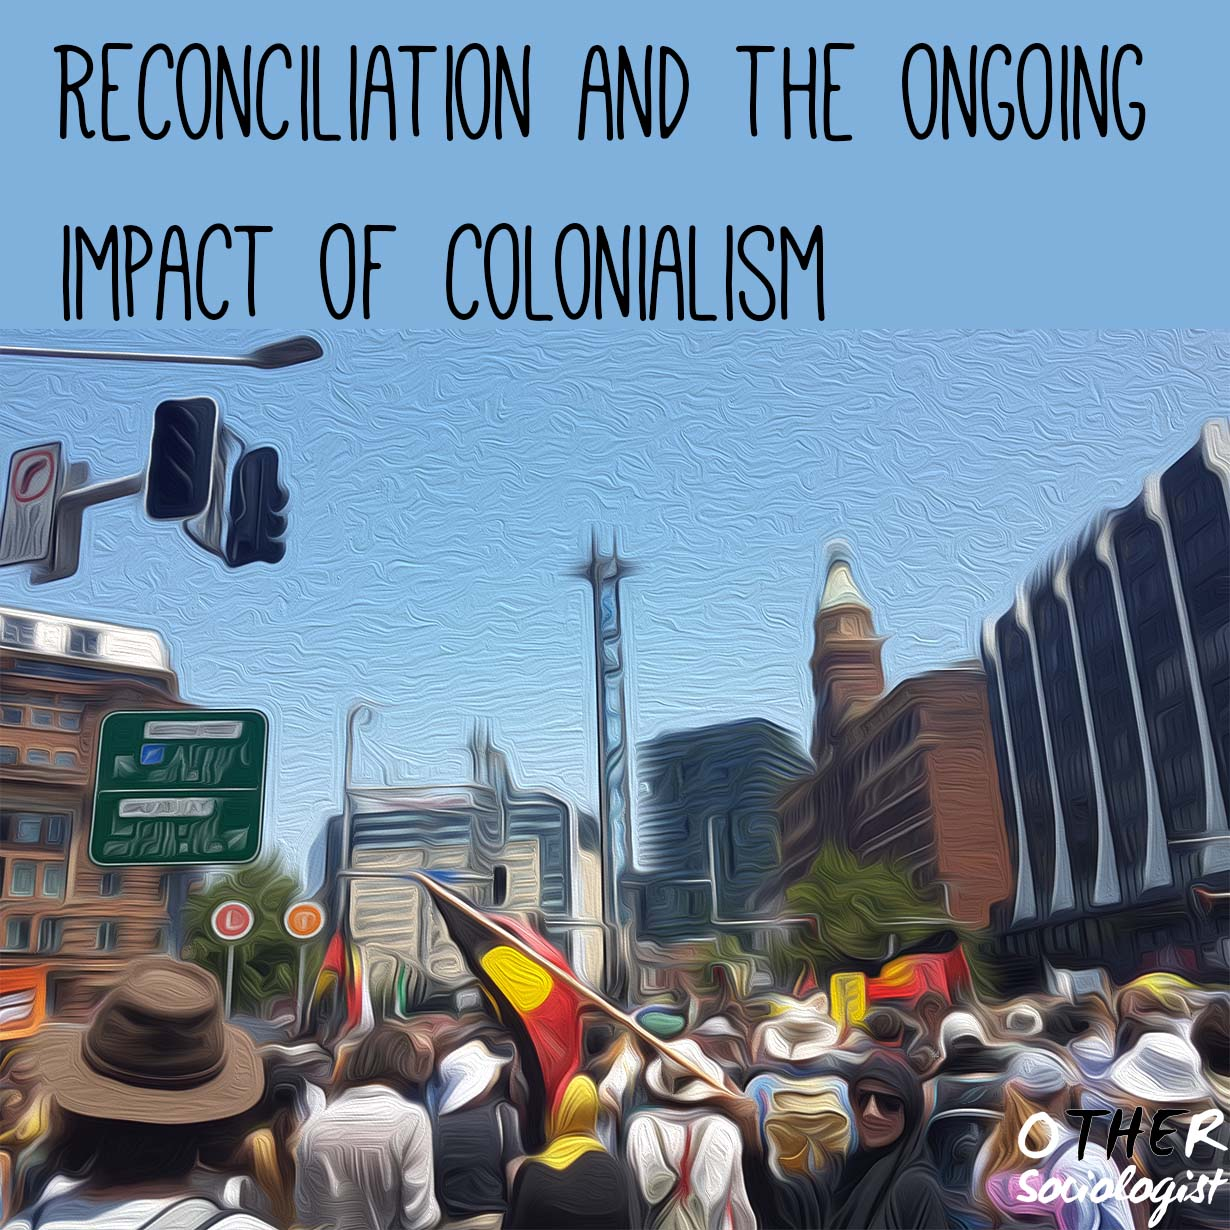 Reconciliation and the ongoing impact of colonialism